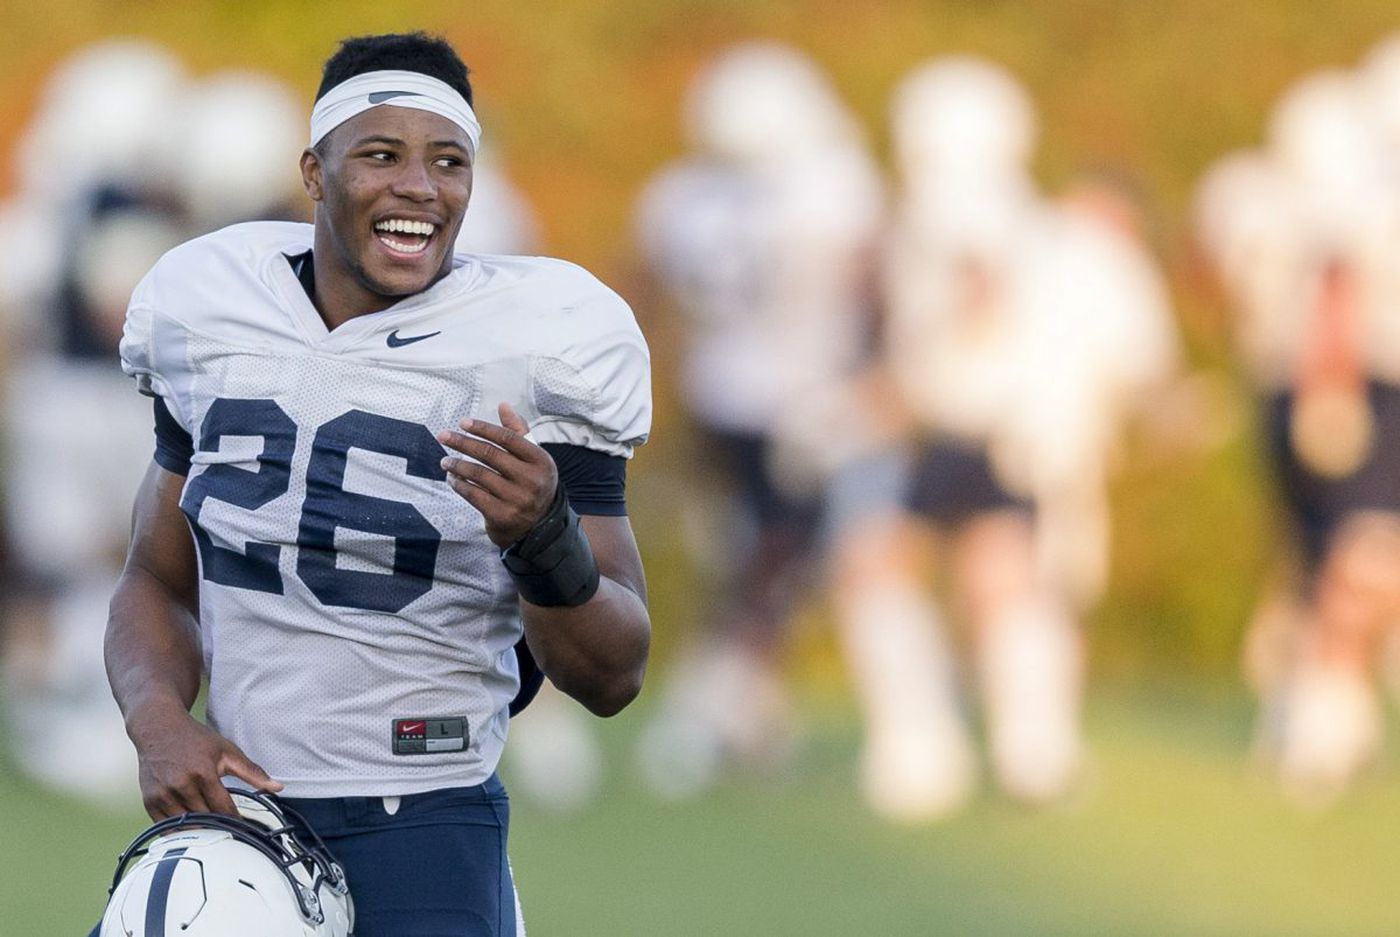 Penn State rises to No. 2 in AP college football poll